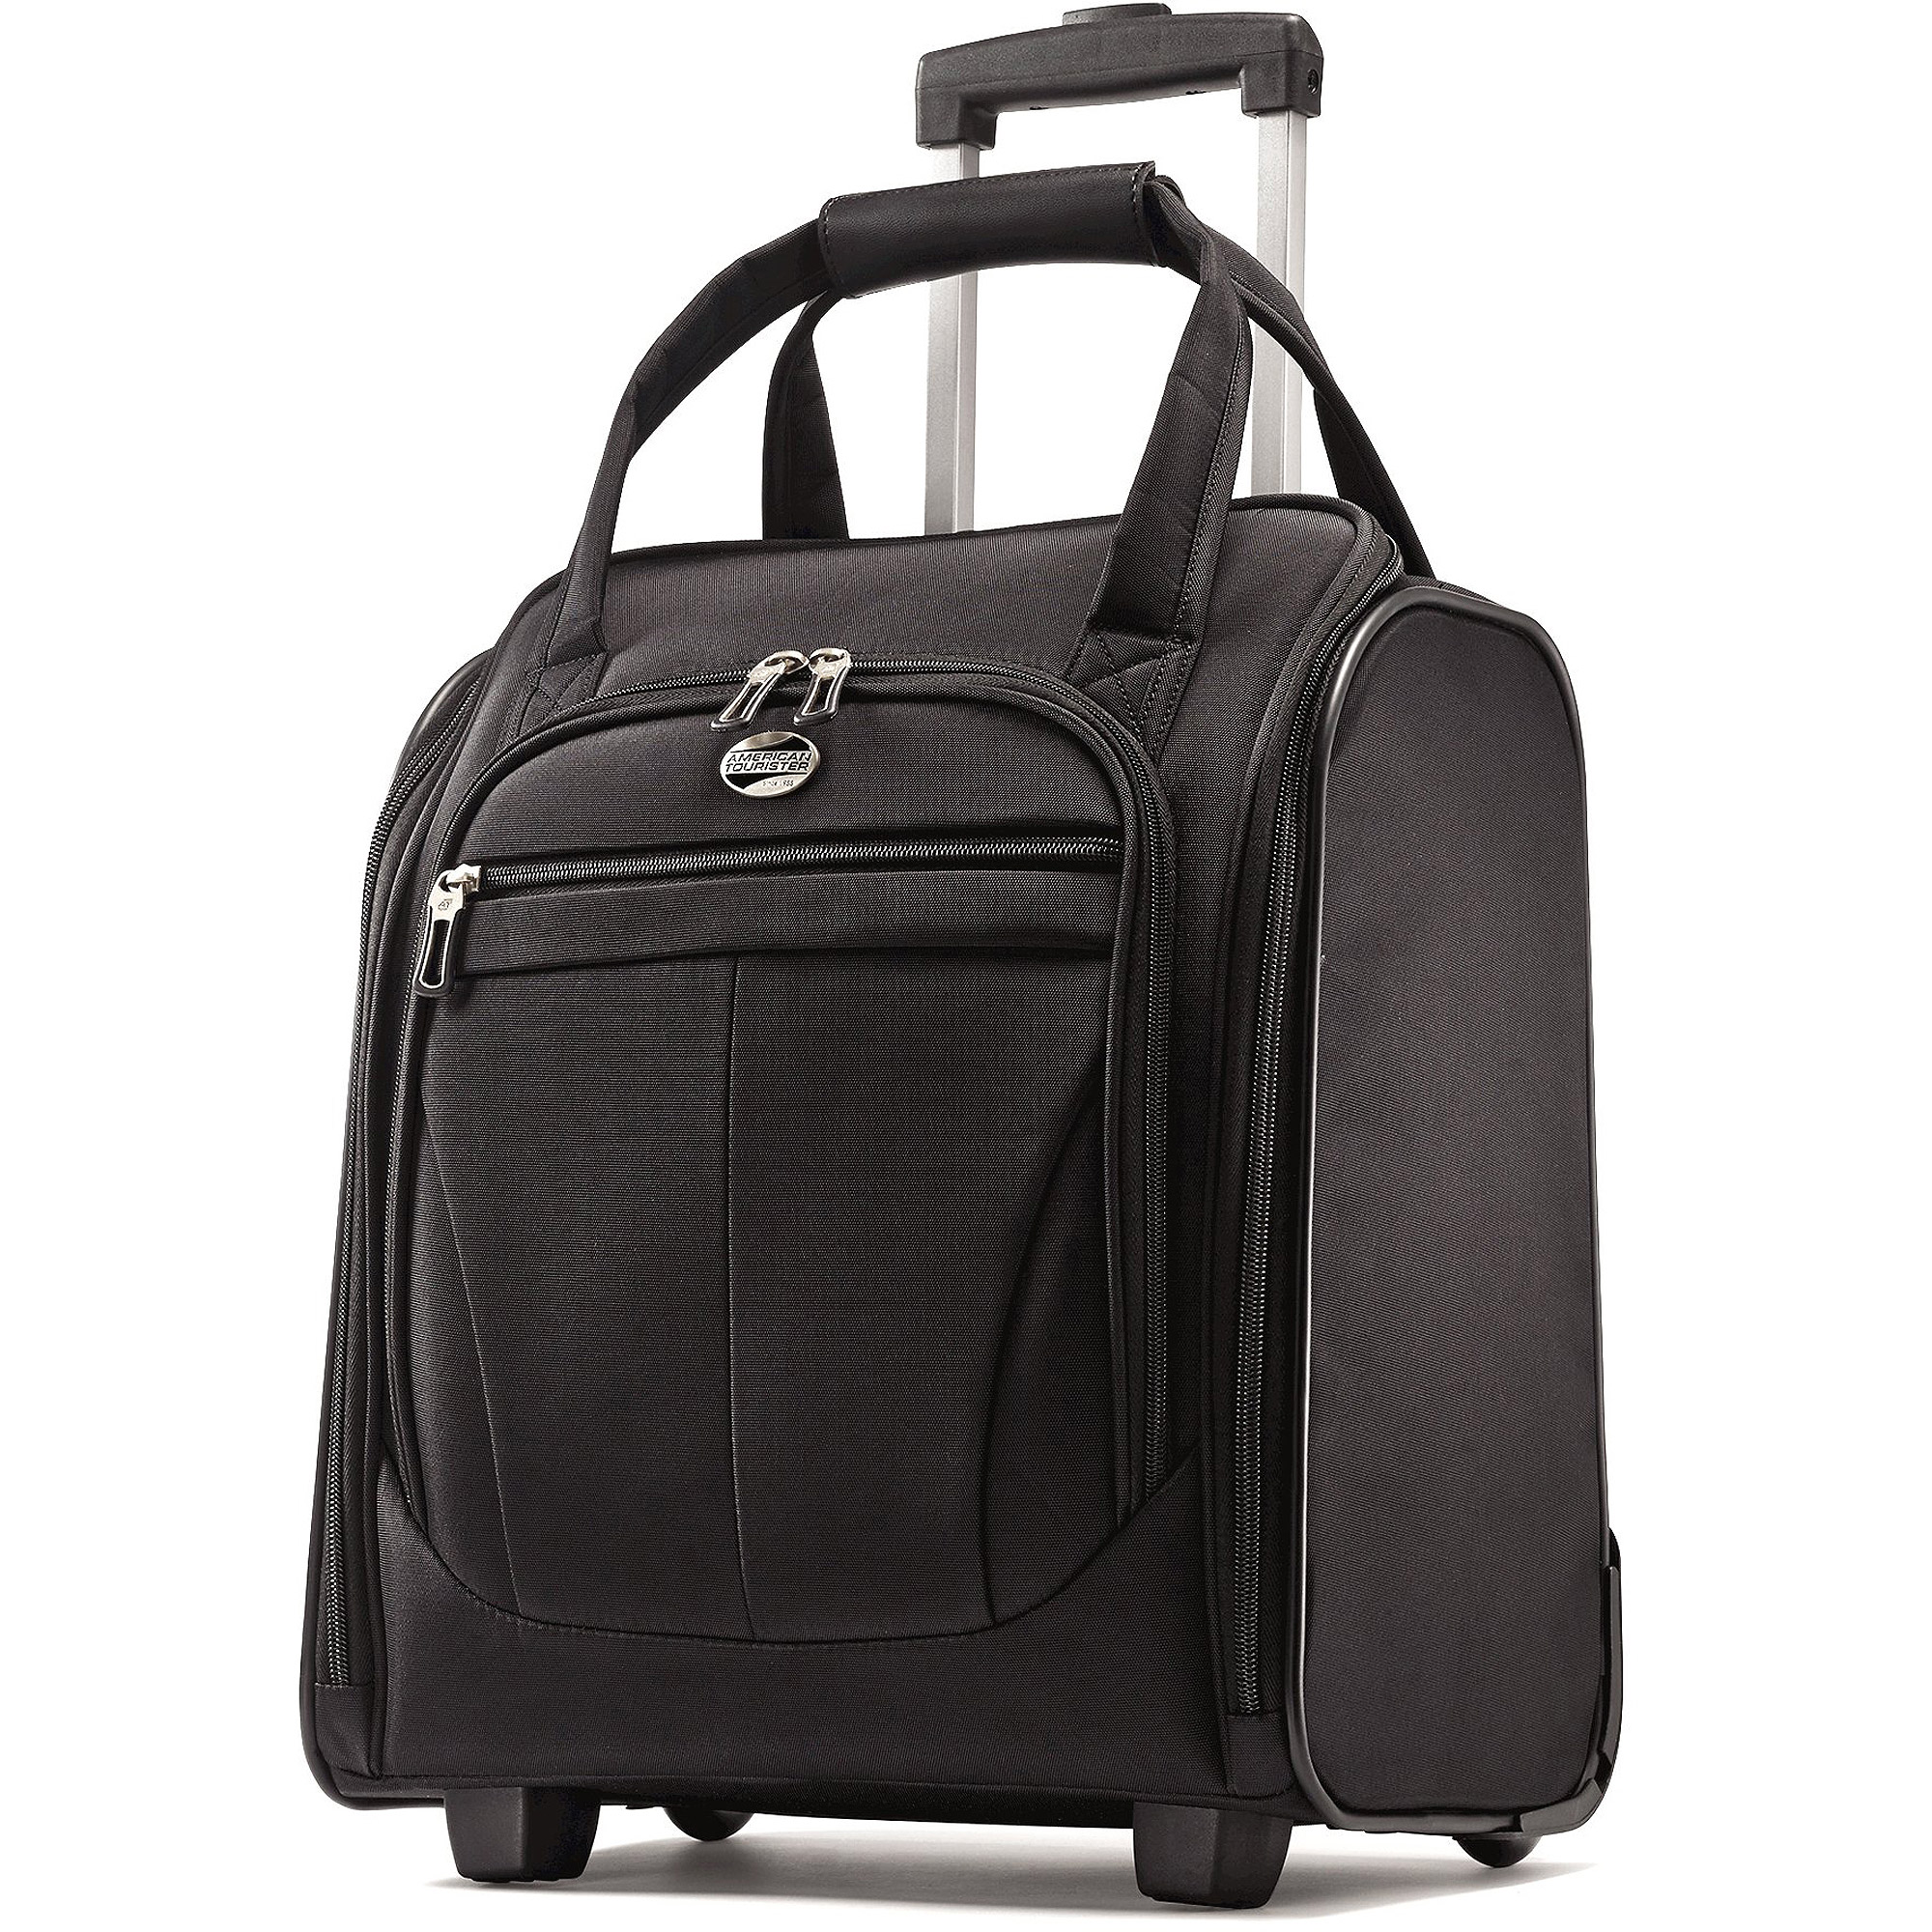 American Tourister Atmosphera II Overnight Tote